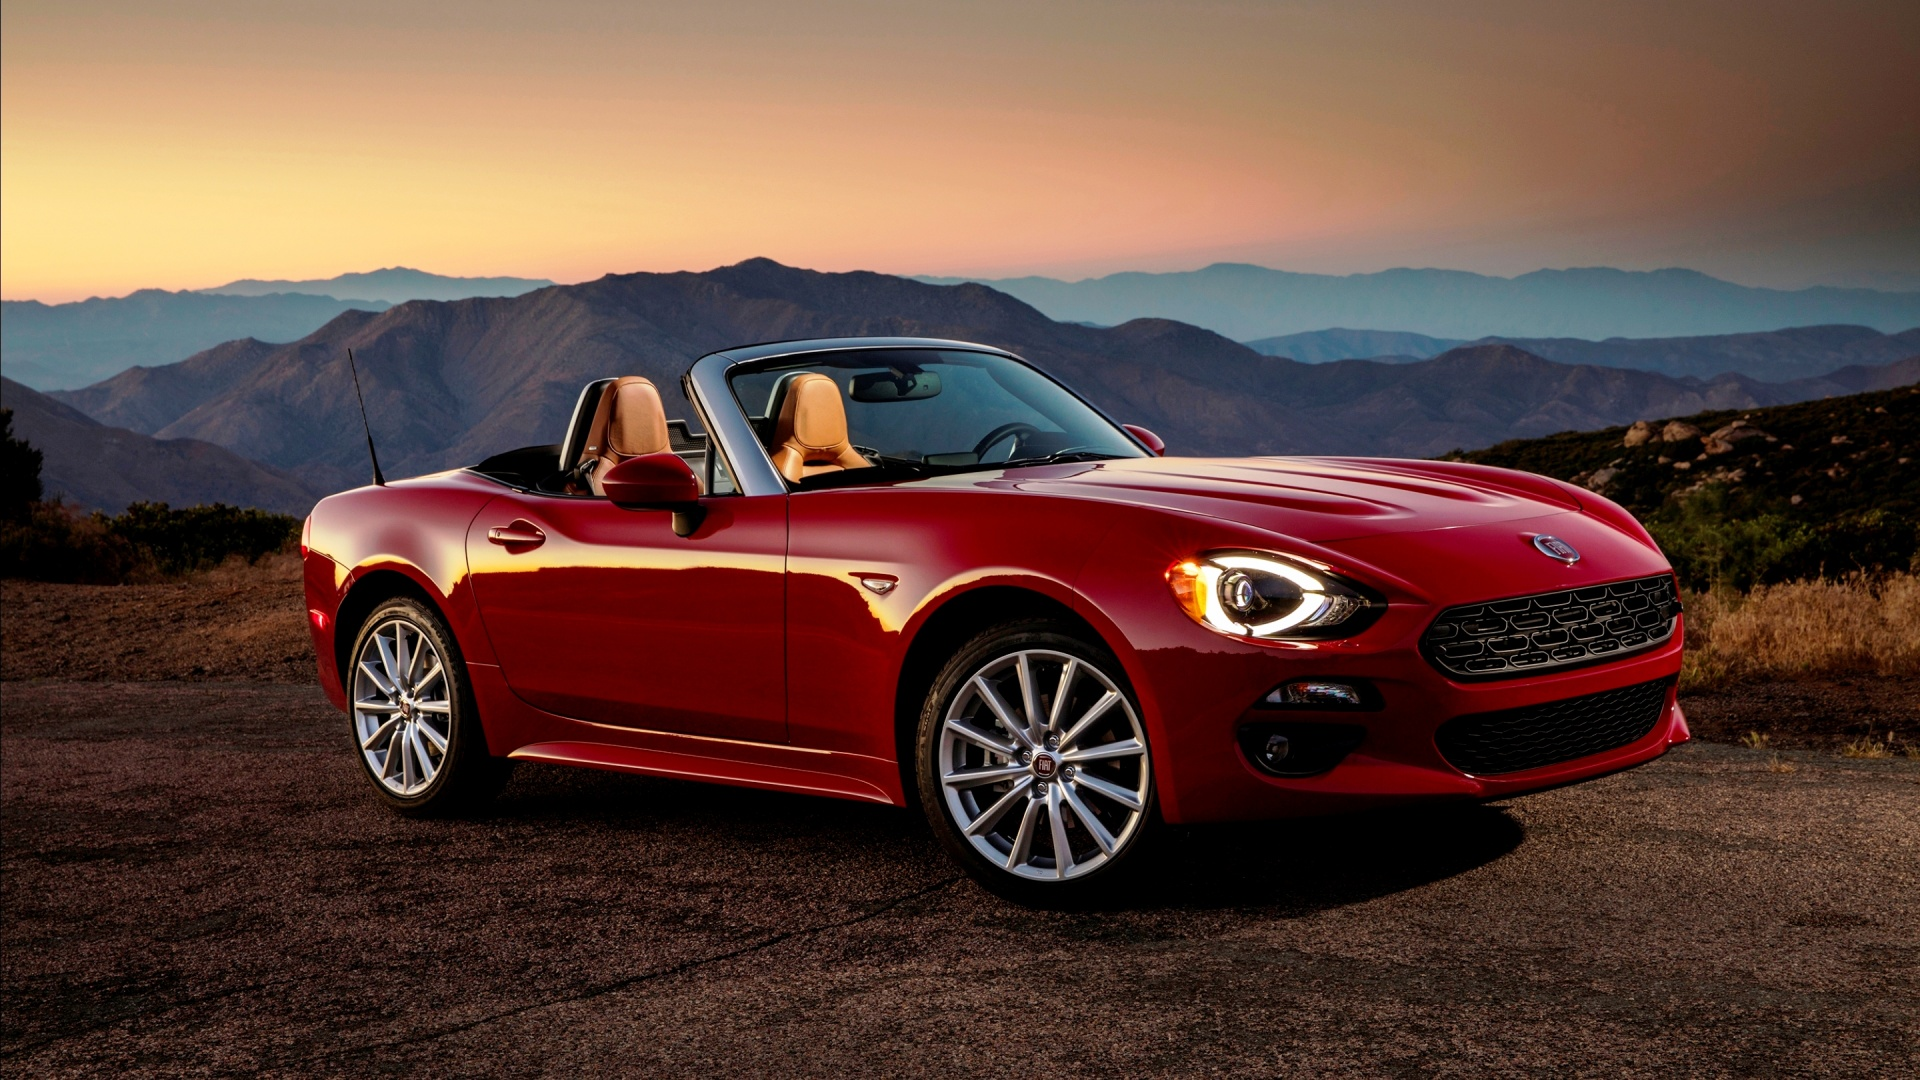 fiat 124 spider lusso front 2017 wallpapers 1920x1080. Black Bedroom Furniture Sets. Home Design Ideas